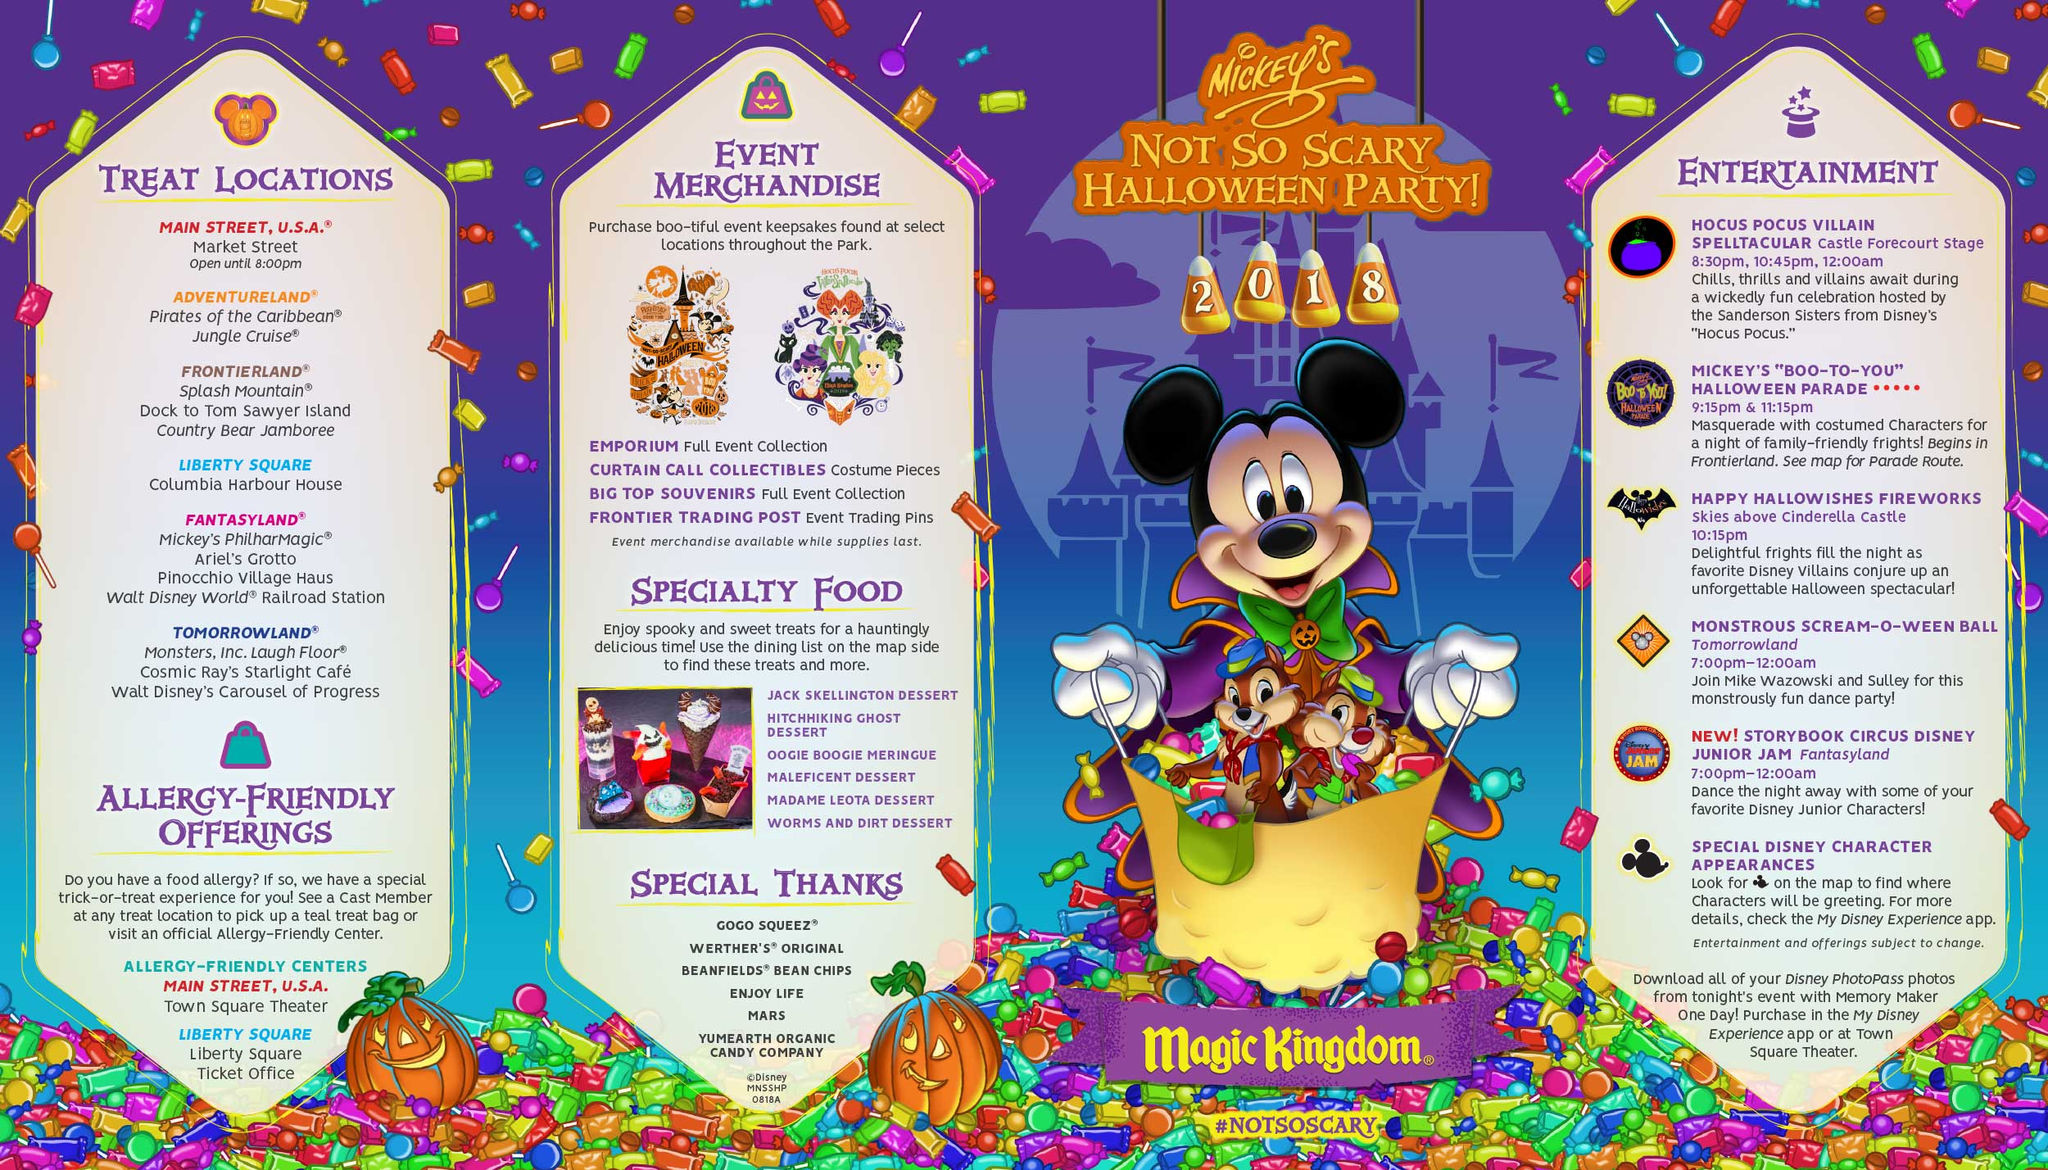 mickey's not-so-scary halloween party guide revealed